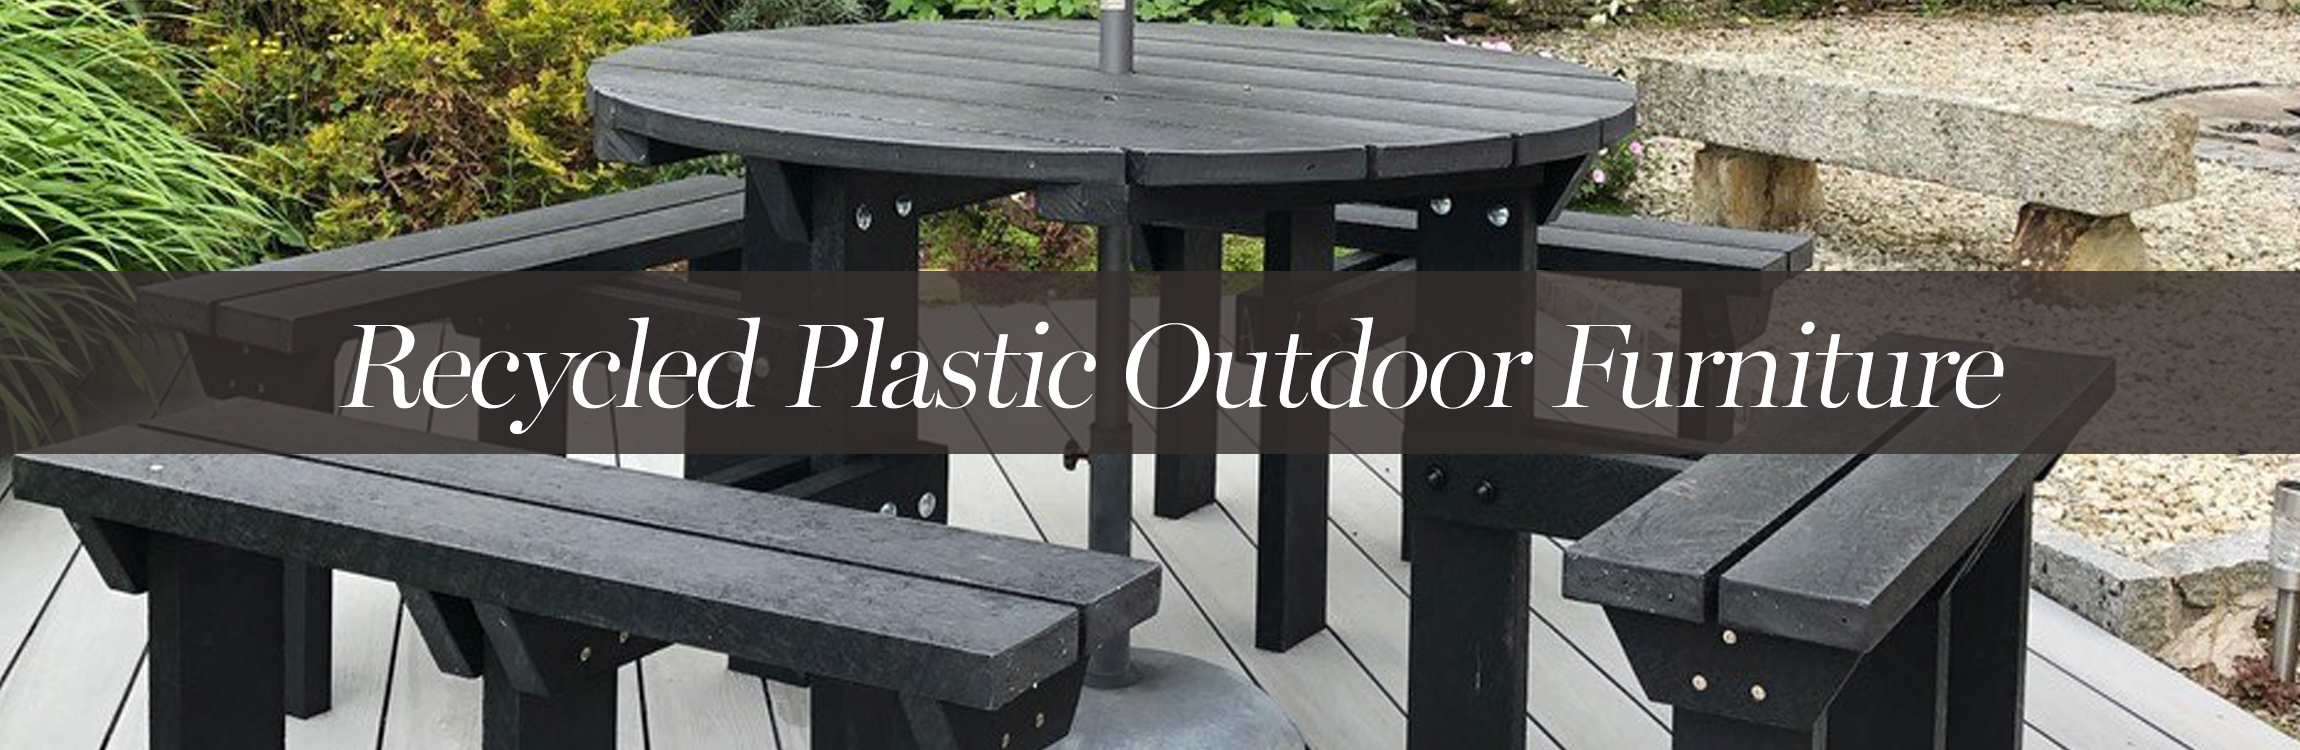 Recycled Plastic Picnic Benches, Recycled Plastic Garden Bench ...